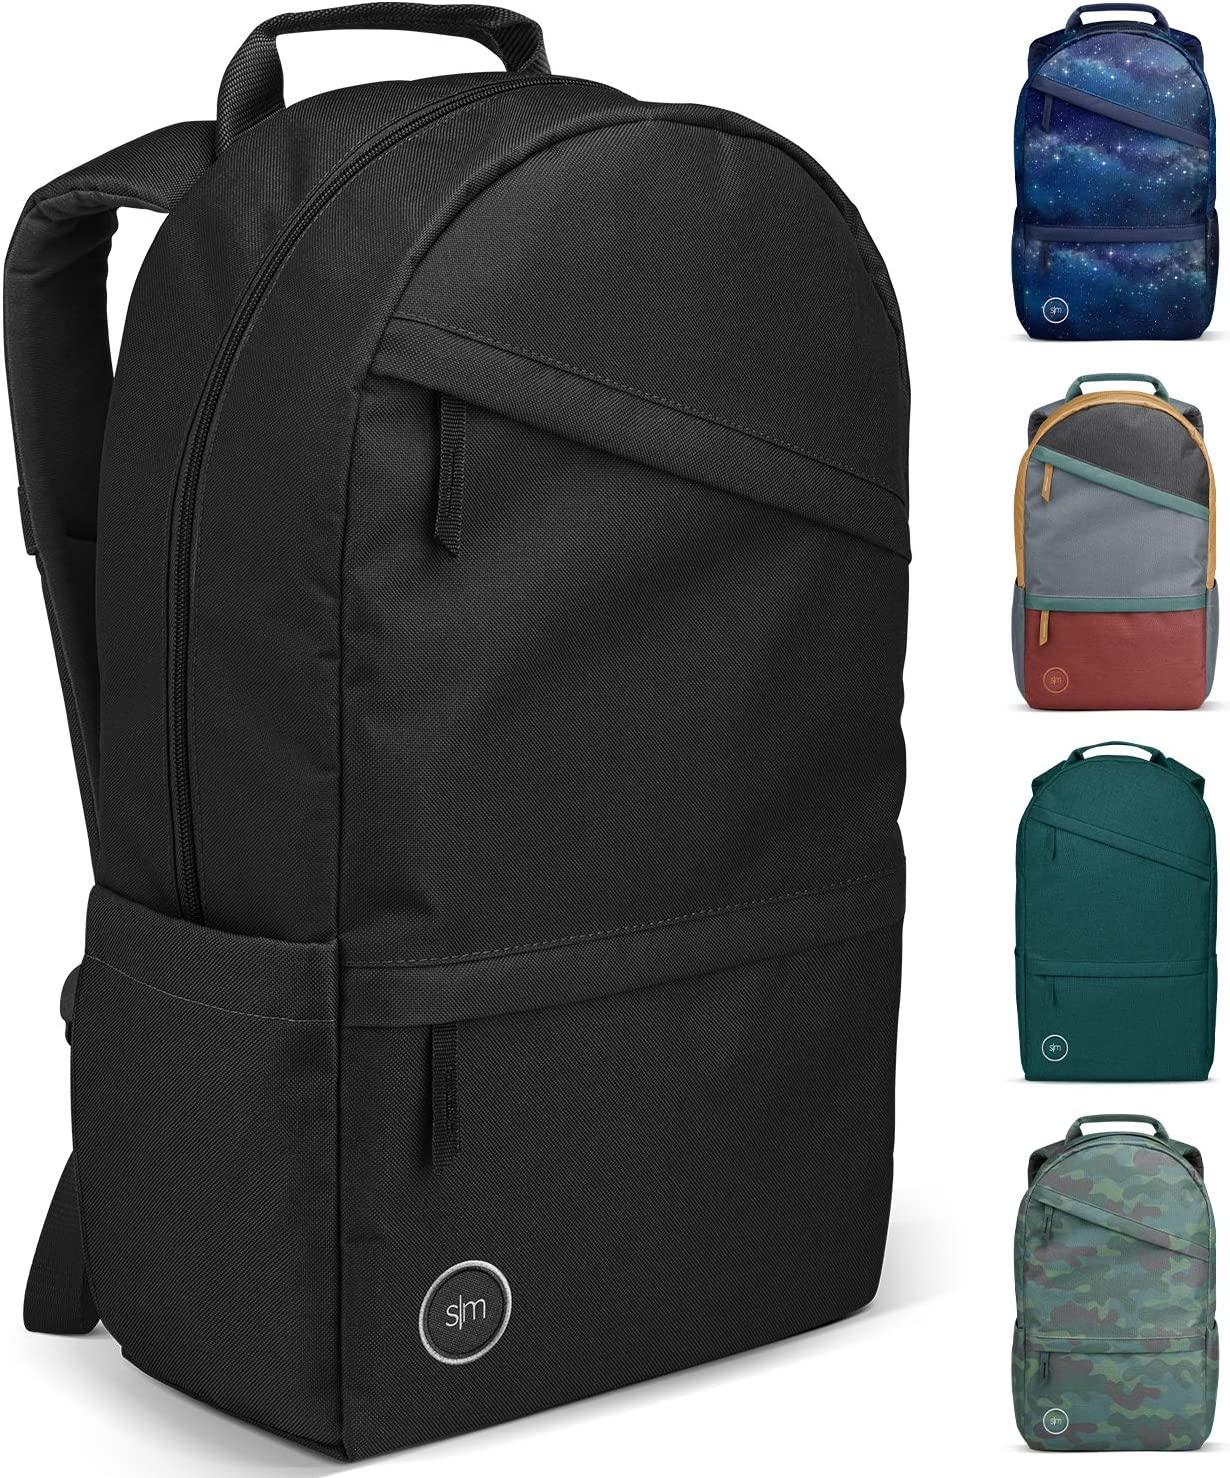 Simple Modern Legacy Backpack with Laptop Compartment Sleeve - 25L Travel Bag for Men & Women College Work School -Midnight Black